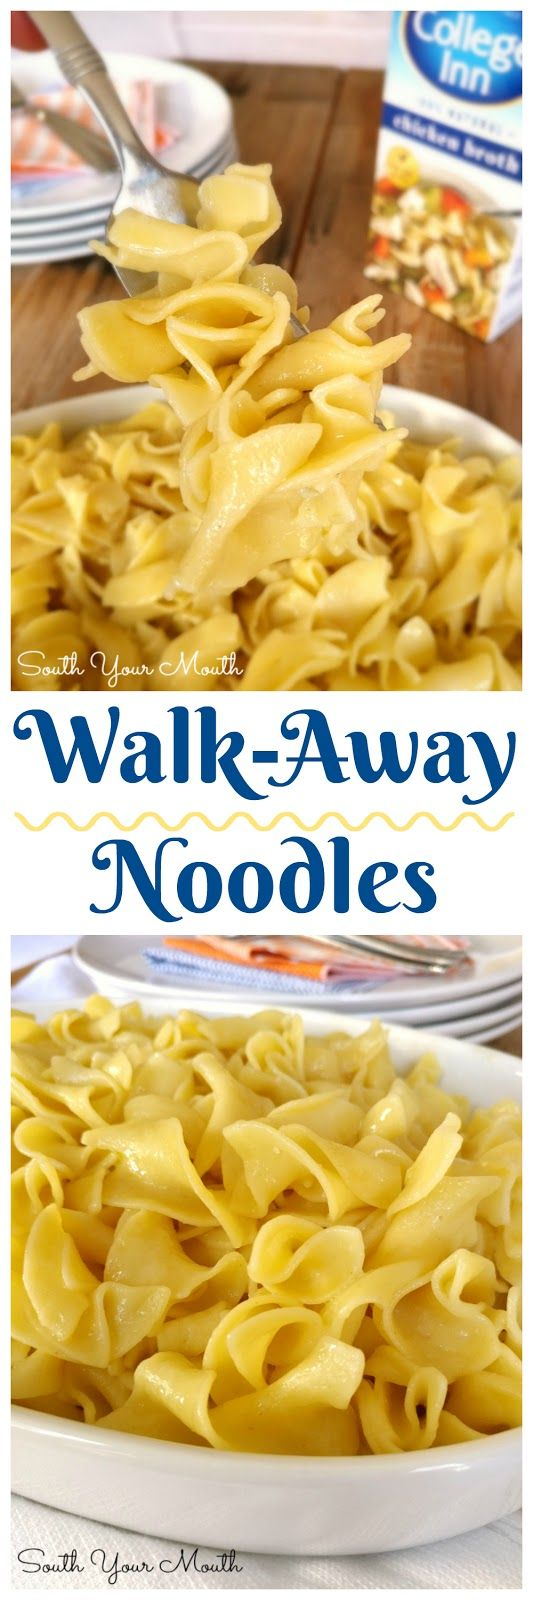 Throw everything in the pot and walk away with this recipe for perfectly cooked, hot buttered noodles that are the perfect side dish for any meal!